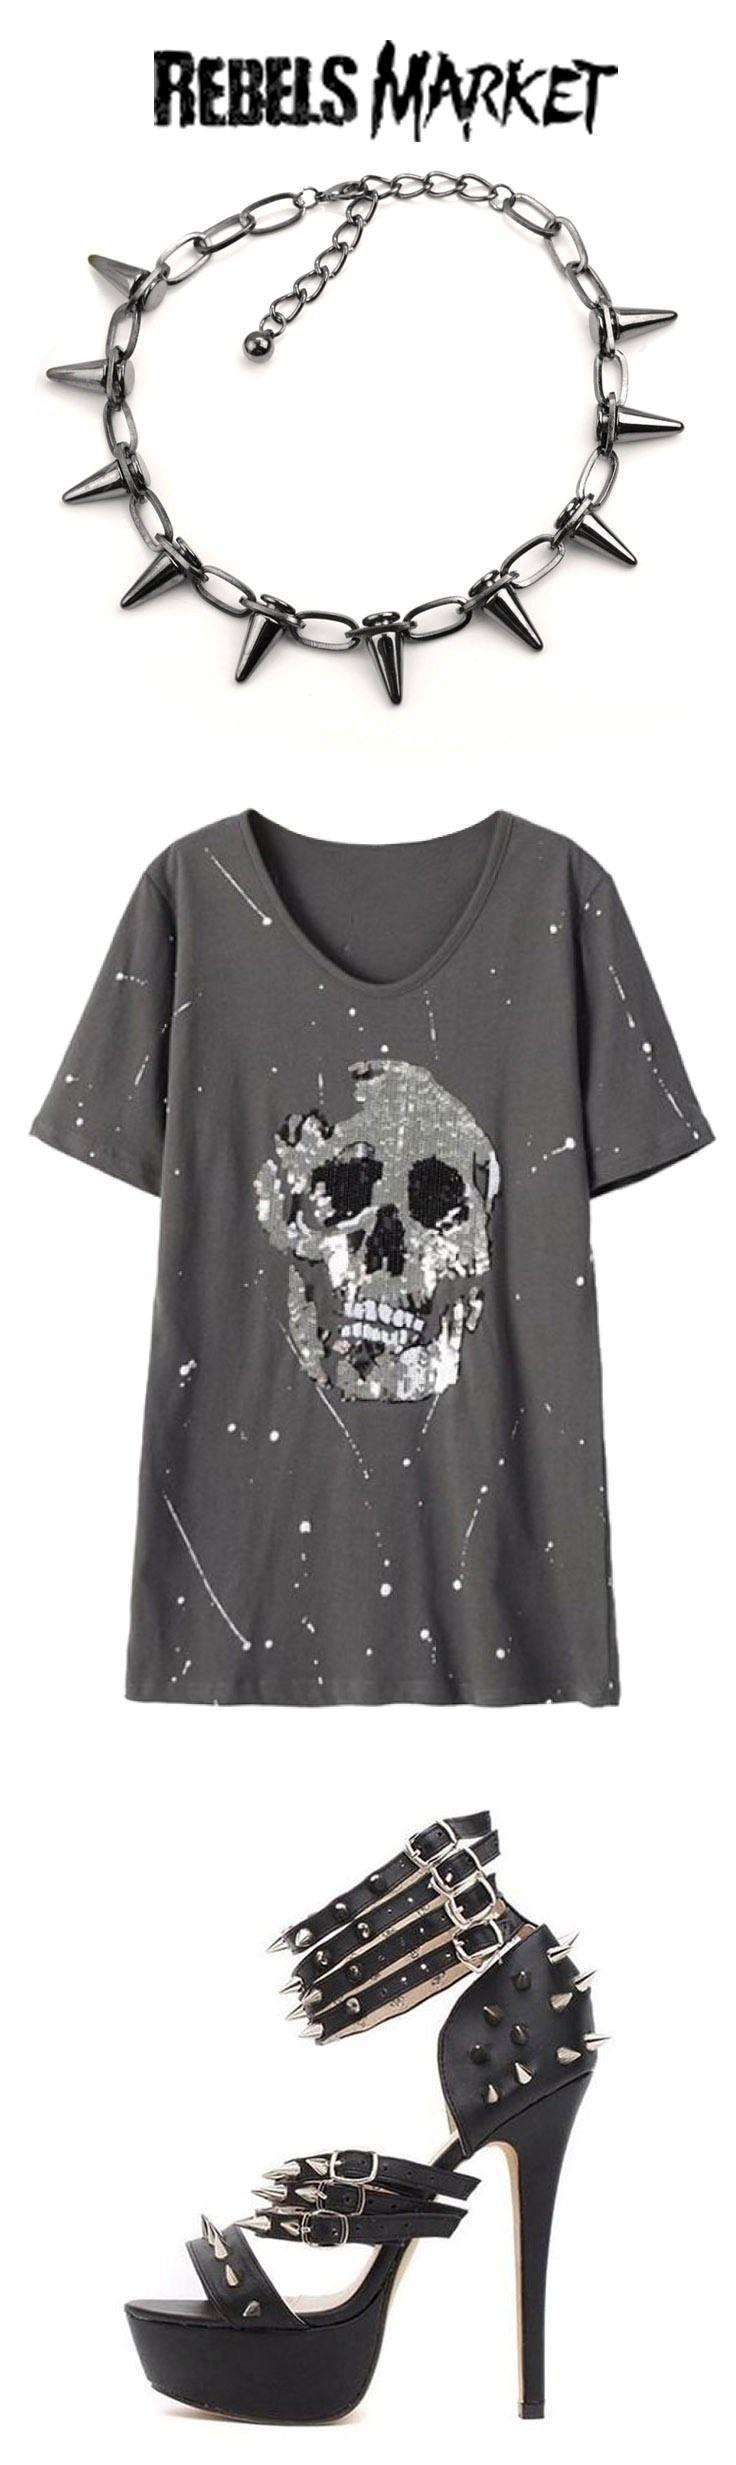 Shop women's punk rock fashion at RebelsMarket!